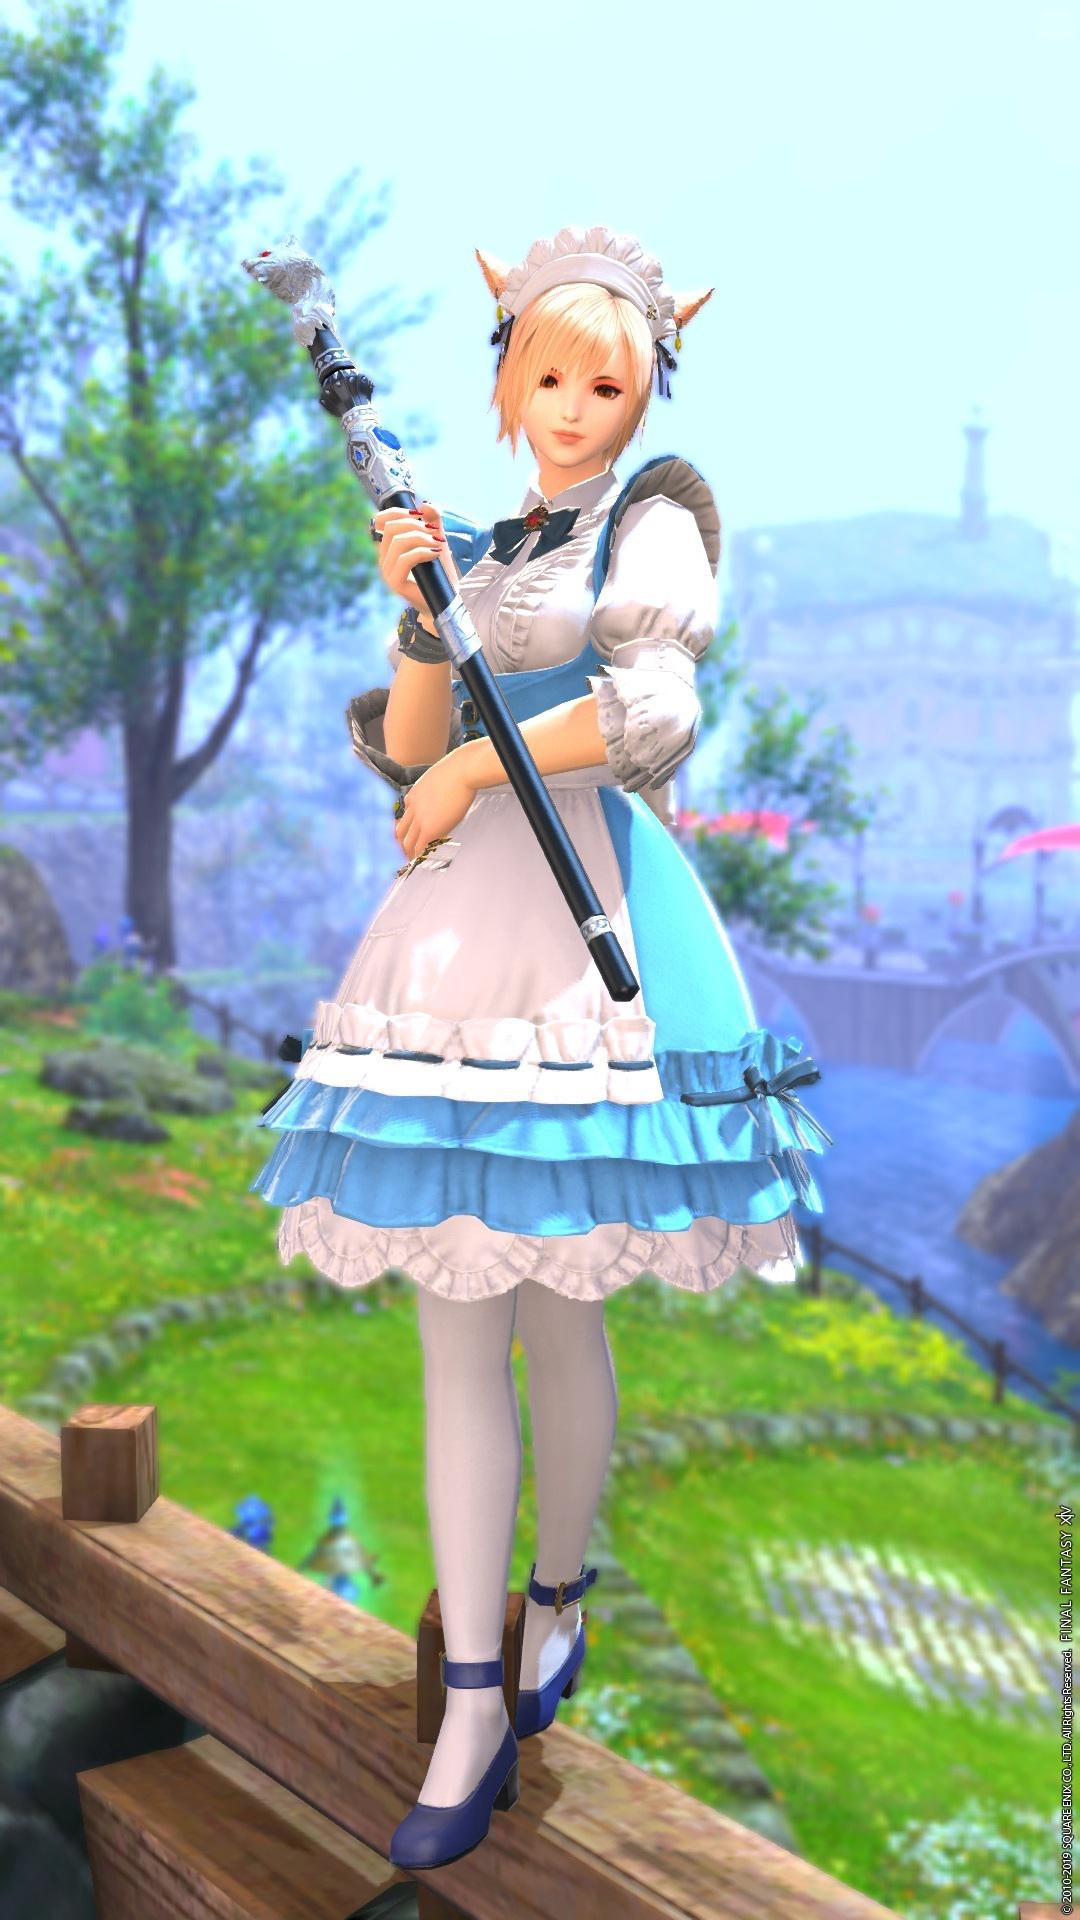 Blue mage? Blue maid?